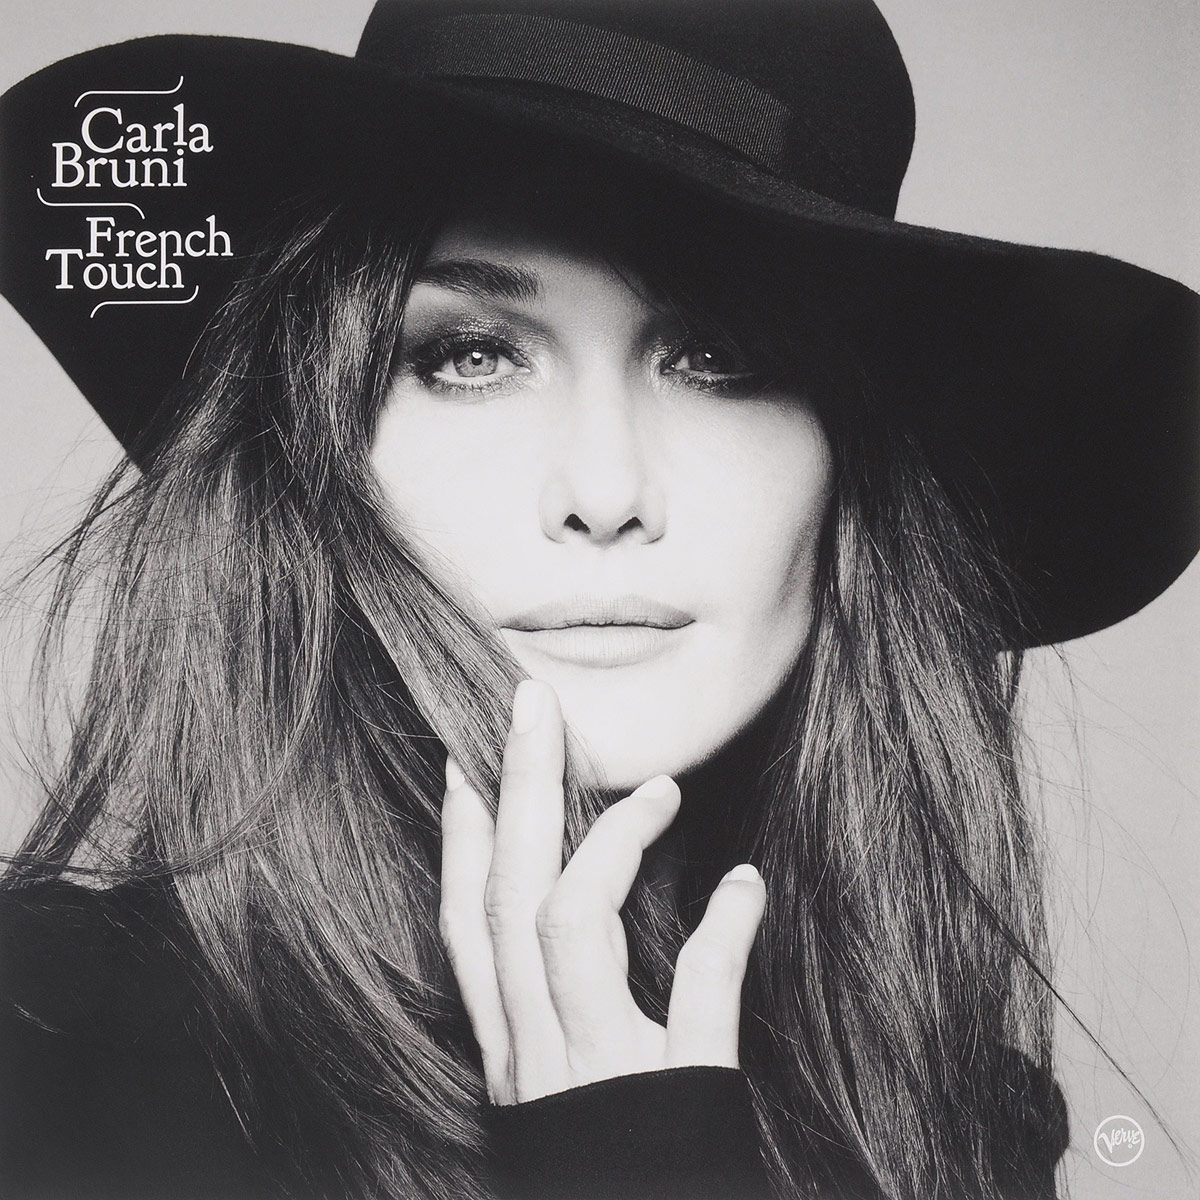 Карла Бруни Carla Bruni. French Touch (LP) carla bruni carla bruni french touch